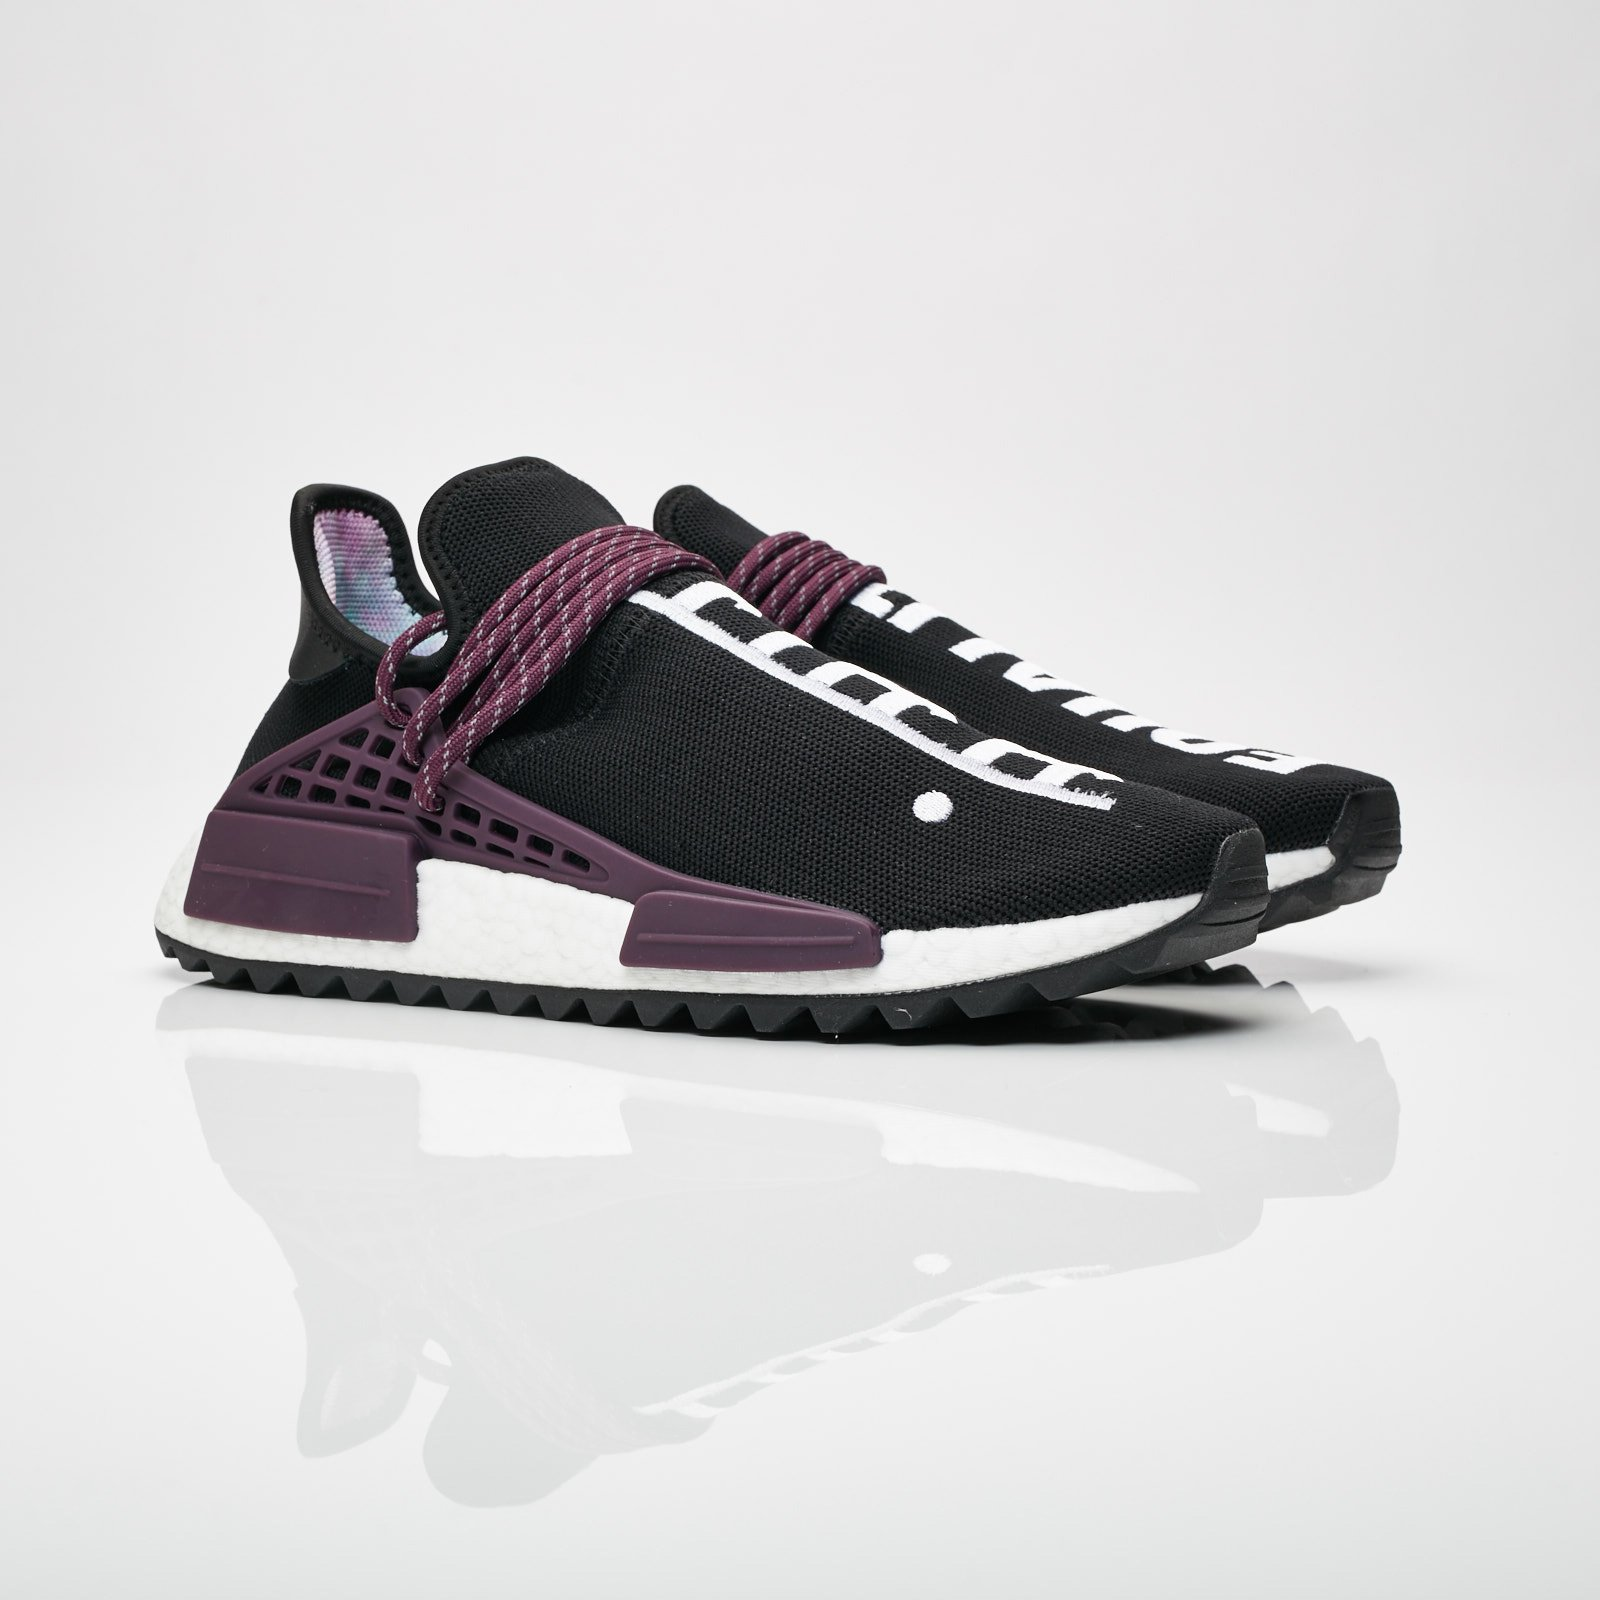 38e88a5f8cb60 adidas Pharrell Williams HU Holi NMD MC - Ac7033 - Sneakersnstuff ...